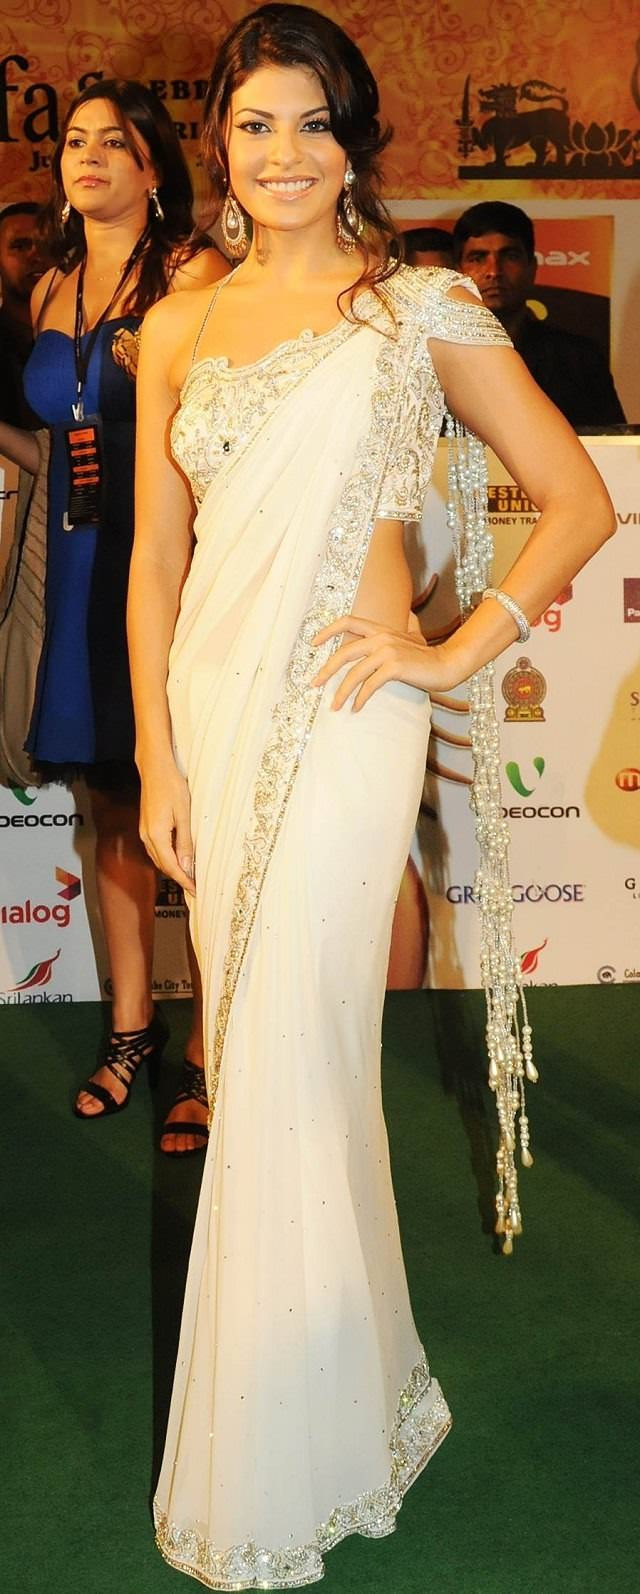 short patli saree draping style to look slim and taller, Jacqueline Fernandez in beautiful saree